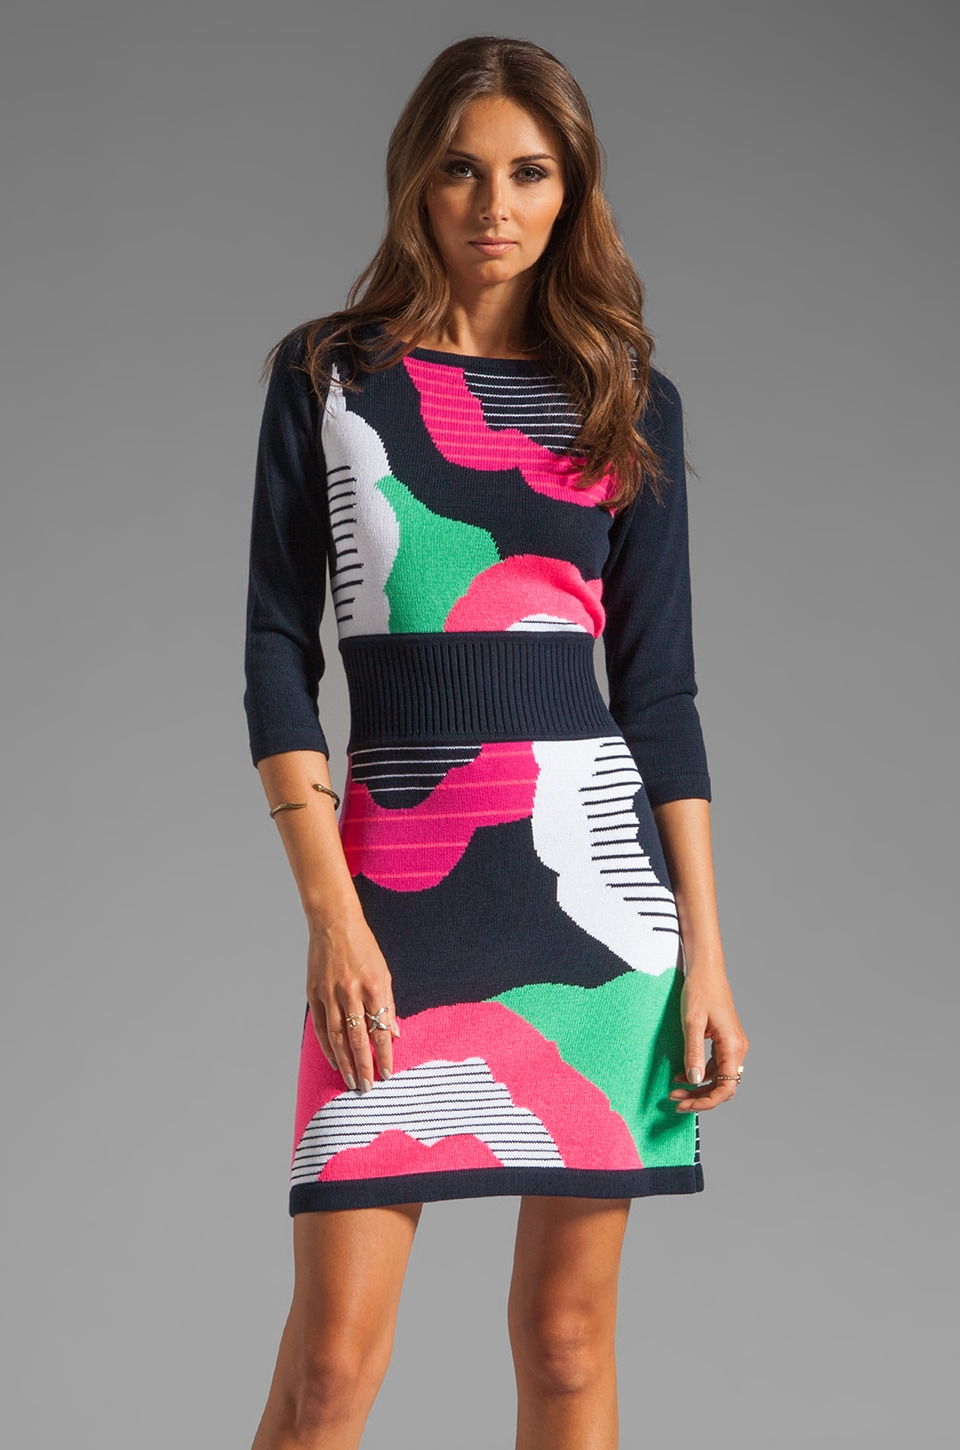 Nanette Lepore Cartoonist Knit Dress in Navy Multi